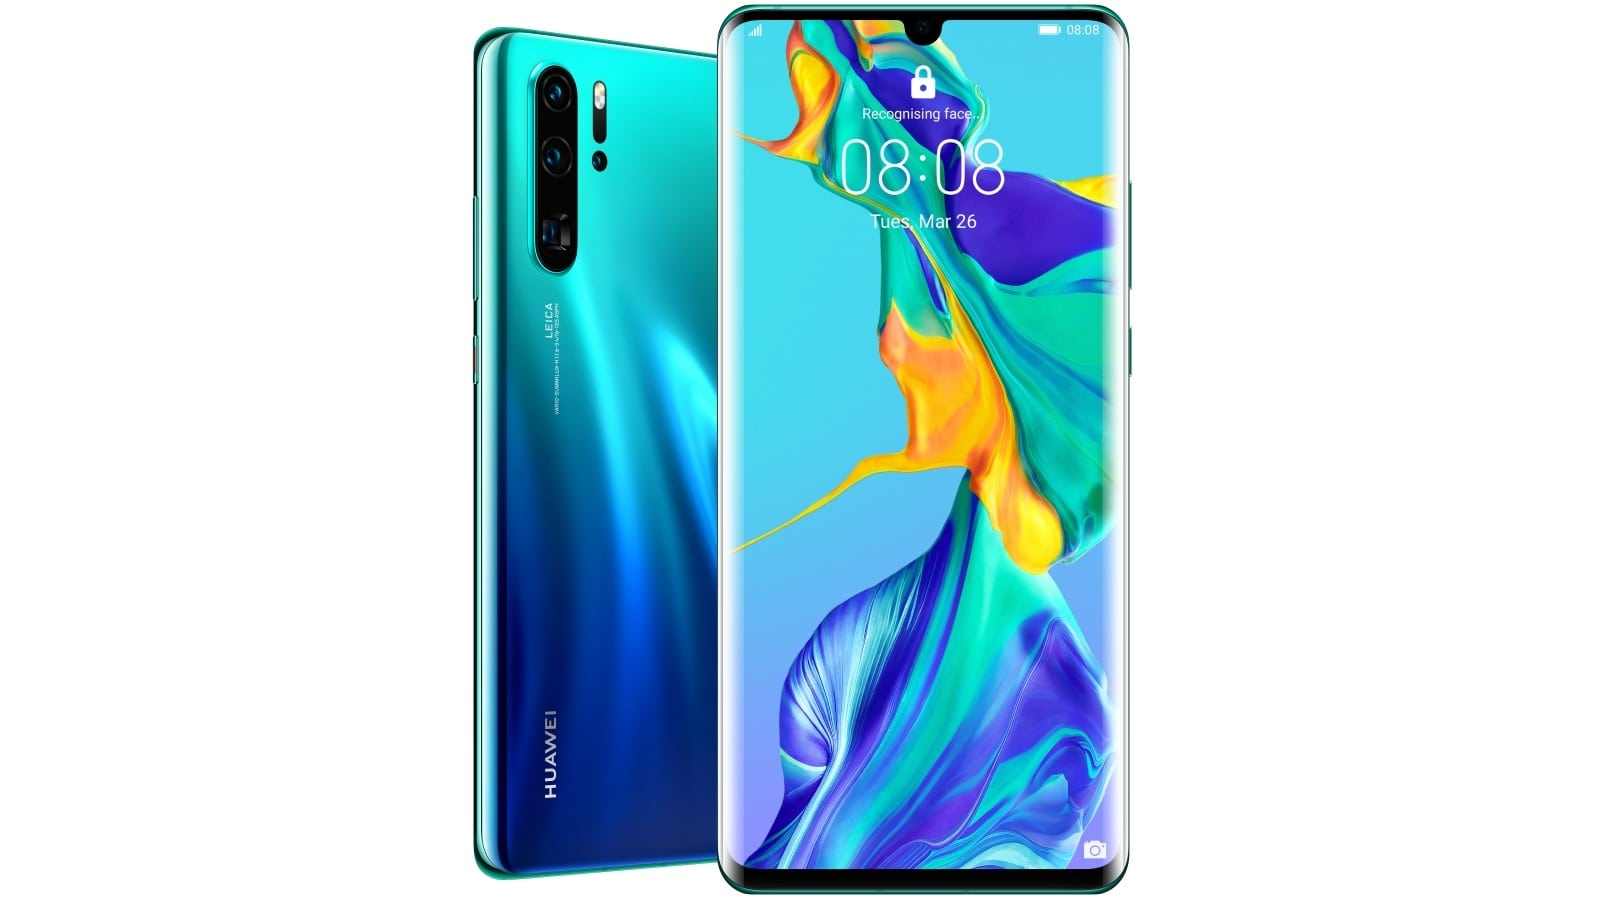 1. Huawei P30 Pro – A Top Notch Phone with the Best Smartphone Camera of 2019